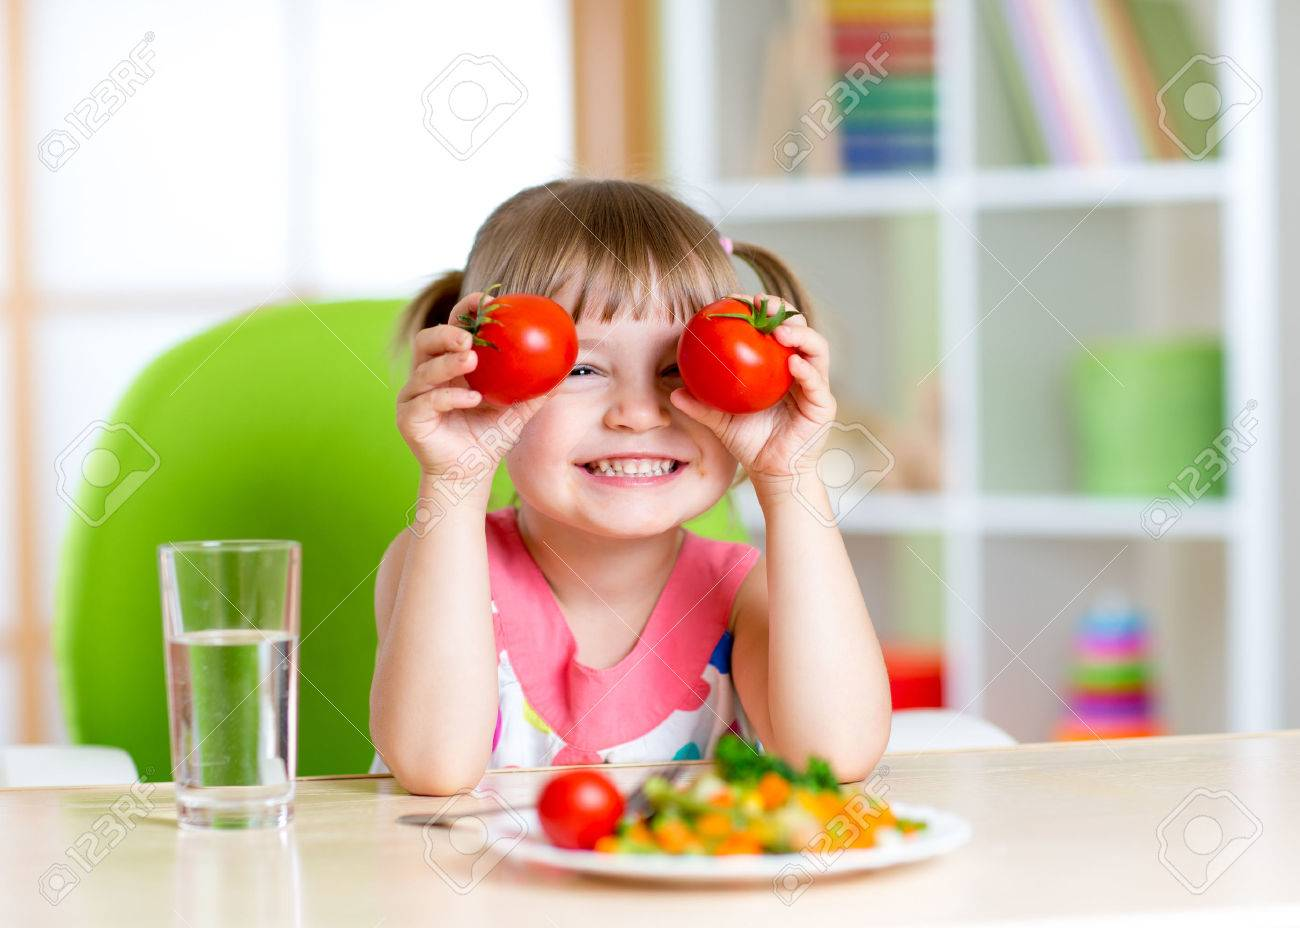 Child with tomatoes. Happy little girl with vegetables at home. - 44393942